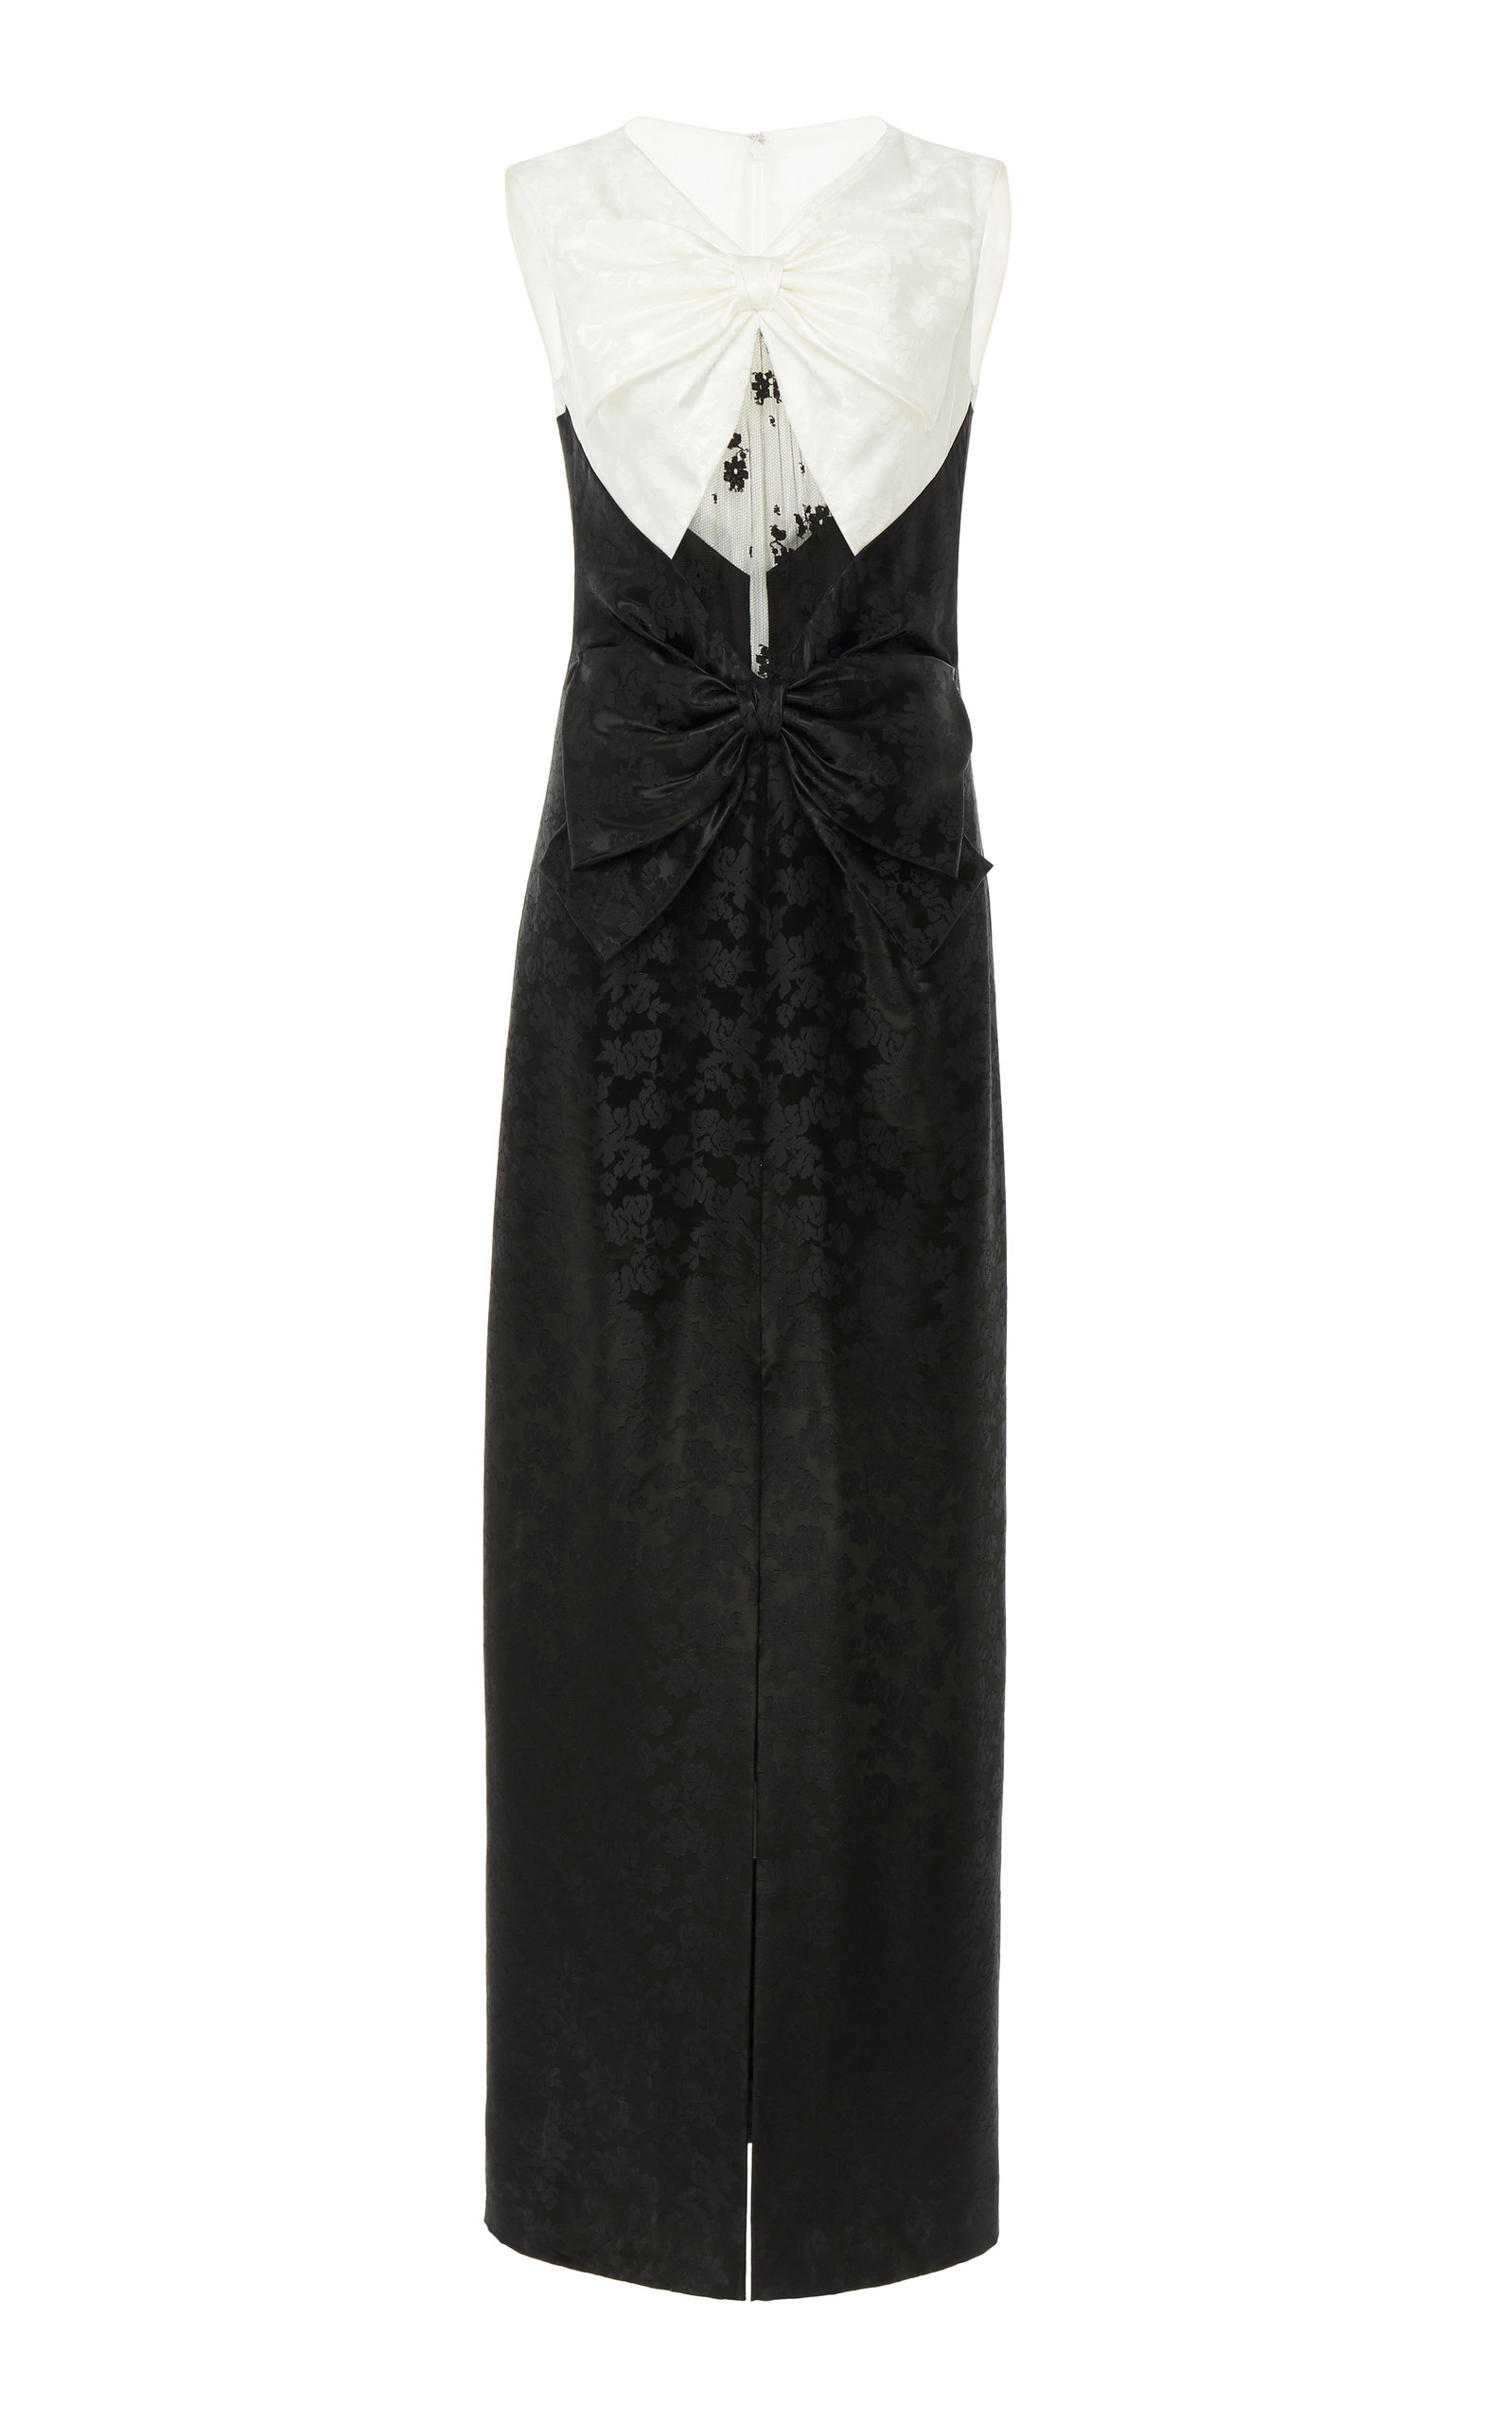 Buy Givenchy Bow-Embellished Lace-Paneled Floral-Brocade Gown online, shop Givenchy at the best price